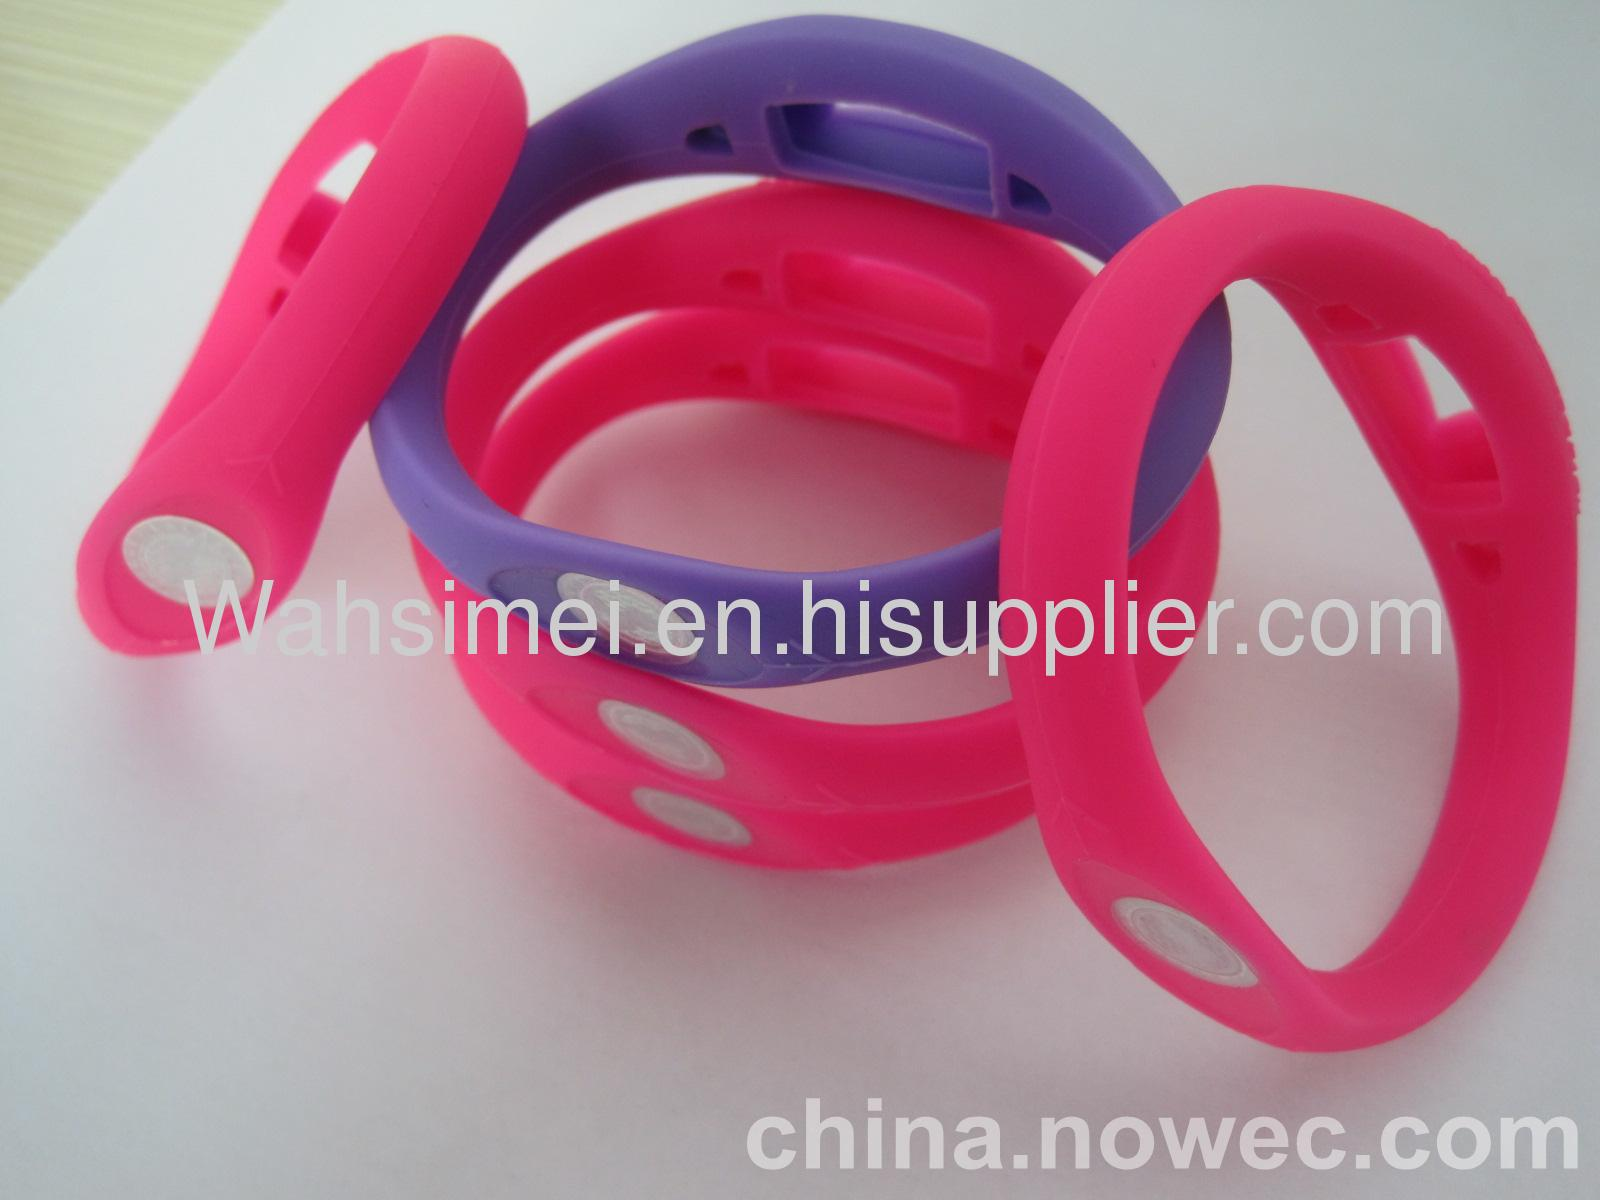 Customize Pure Silicone Power Wristbands